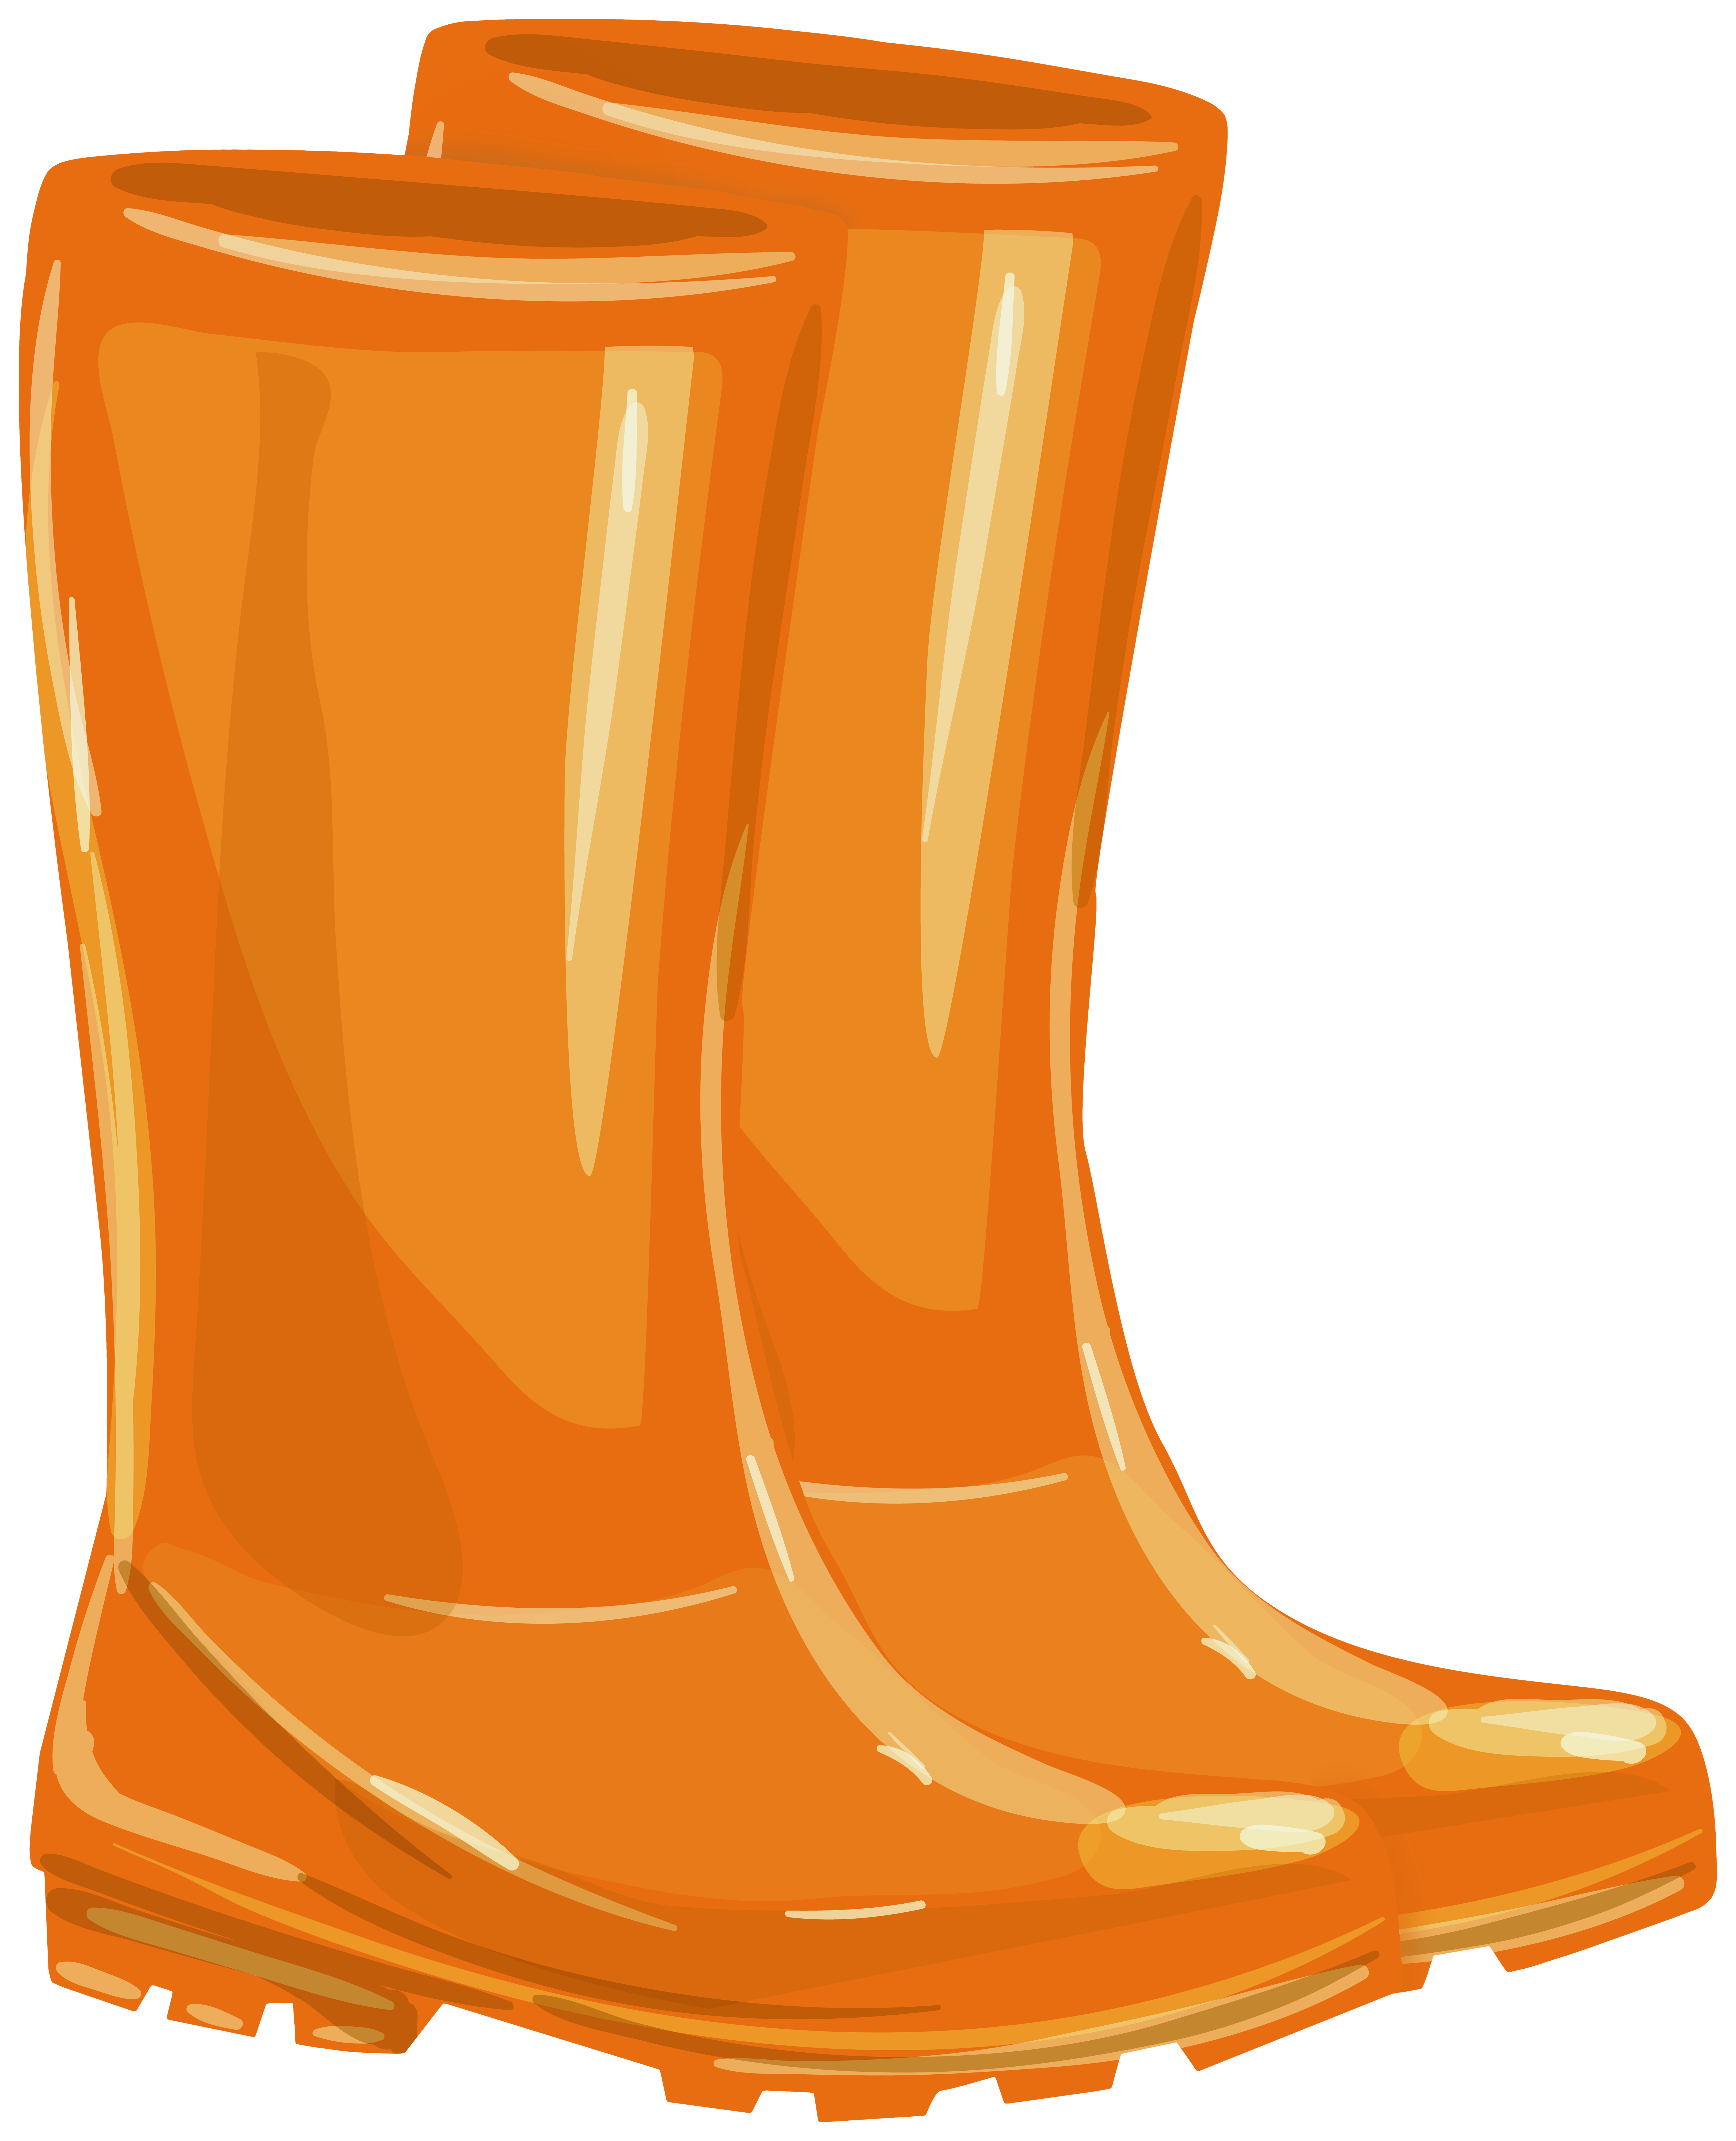 Orange Rubber Boots PNG Clipart.